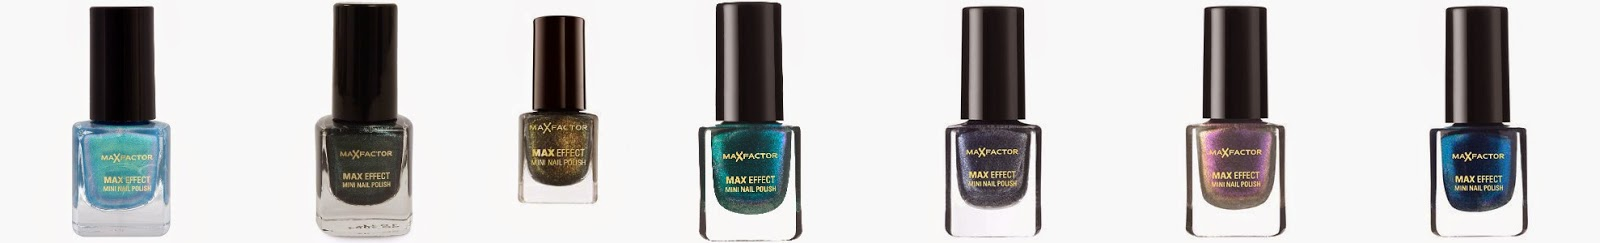 maxfactor-maxeffect-nail-polish-wishlist-dazzling-blue-glam-green-green-bronze-graffiti-odyssey-blue-moon-dust-meteorite-picture